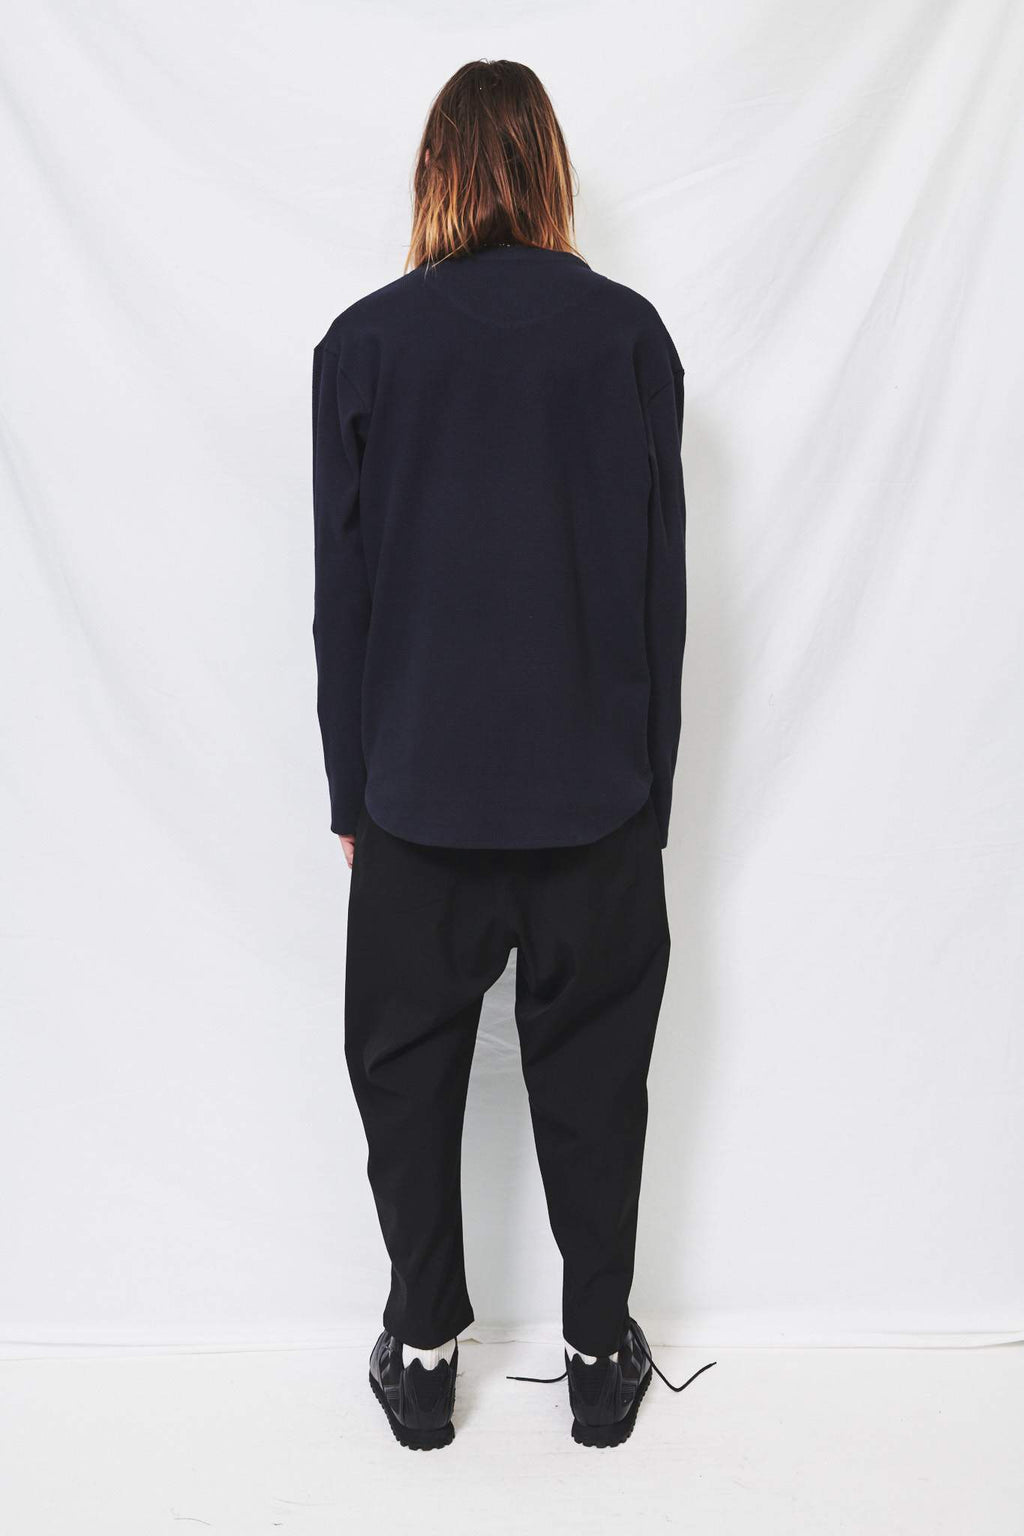 Black Suiting Easy Pants